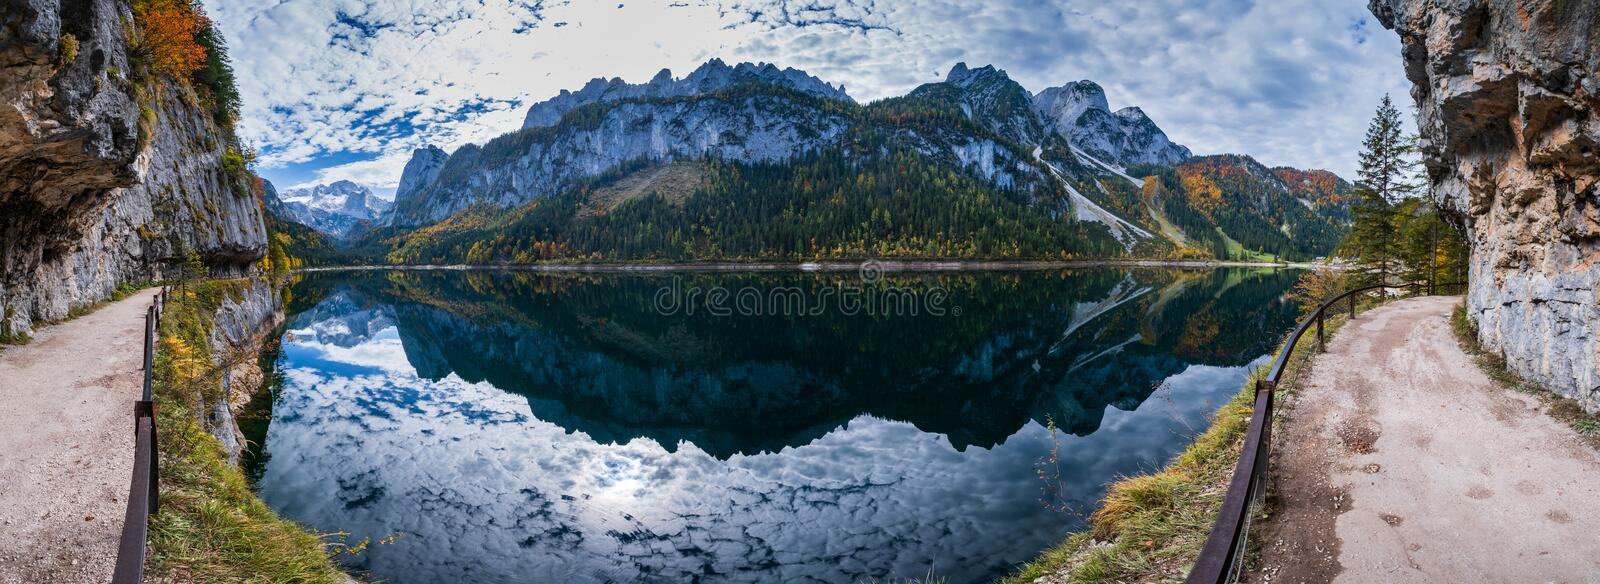 Peaceful autumn Alps mountain lake with clear transparent water and reflections. Gosauseen or Vorderer Gosausee lake, Upper. Sunny idyllic colorful autumn alpine stock photos